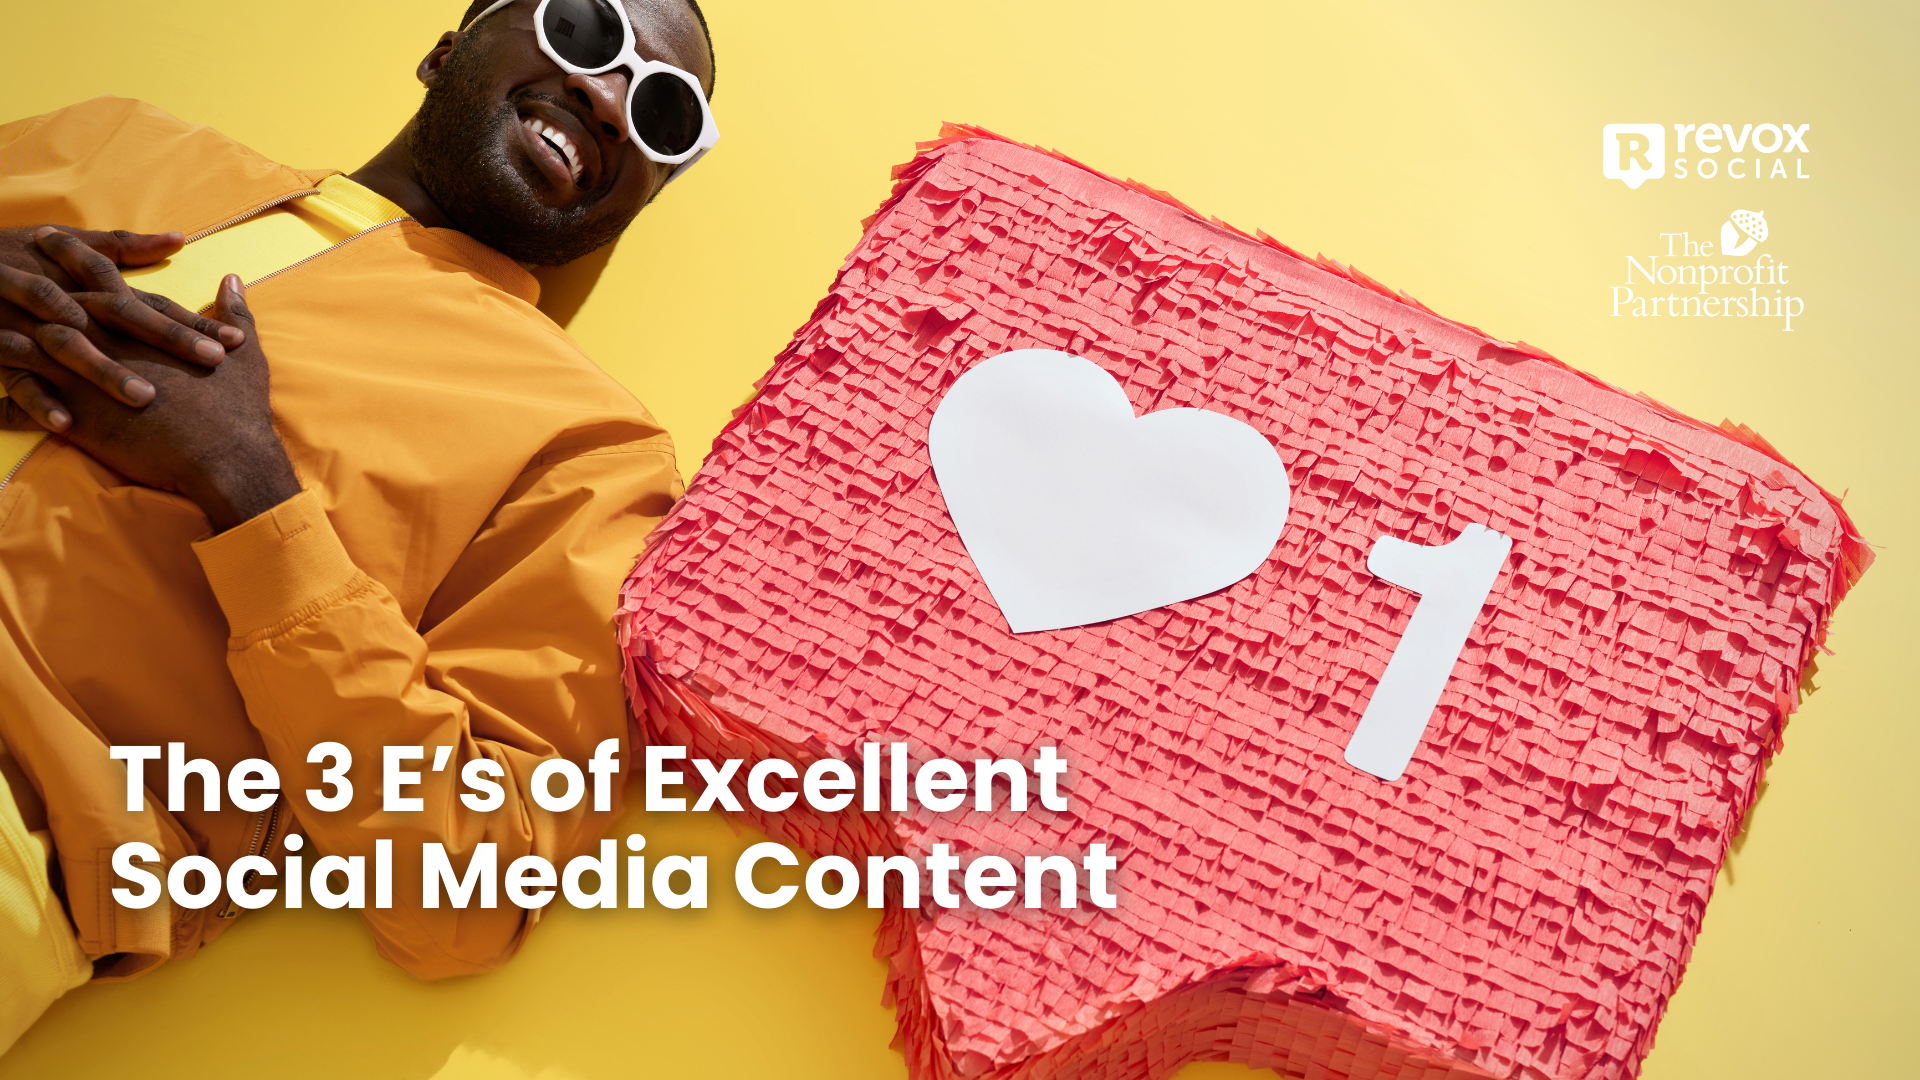 [Zoom Meeting] The 3 E's of Excellent Social Media Content